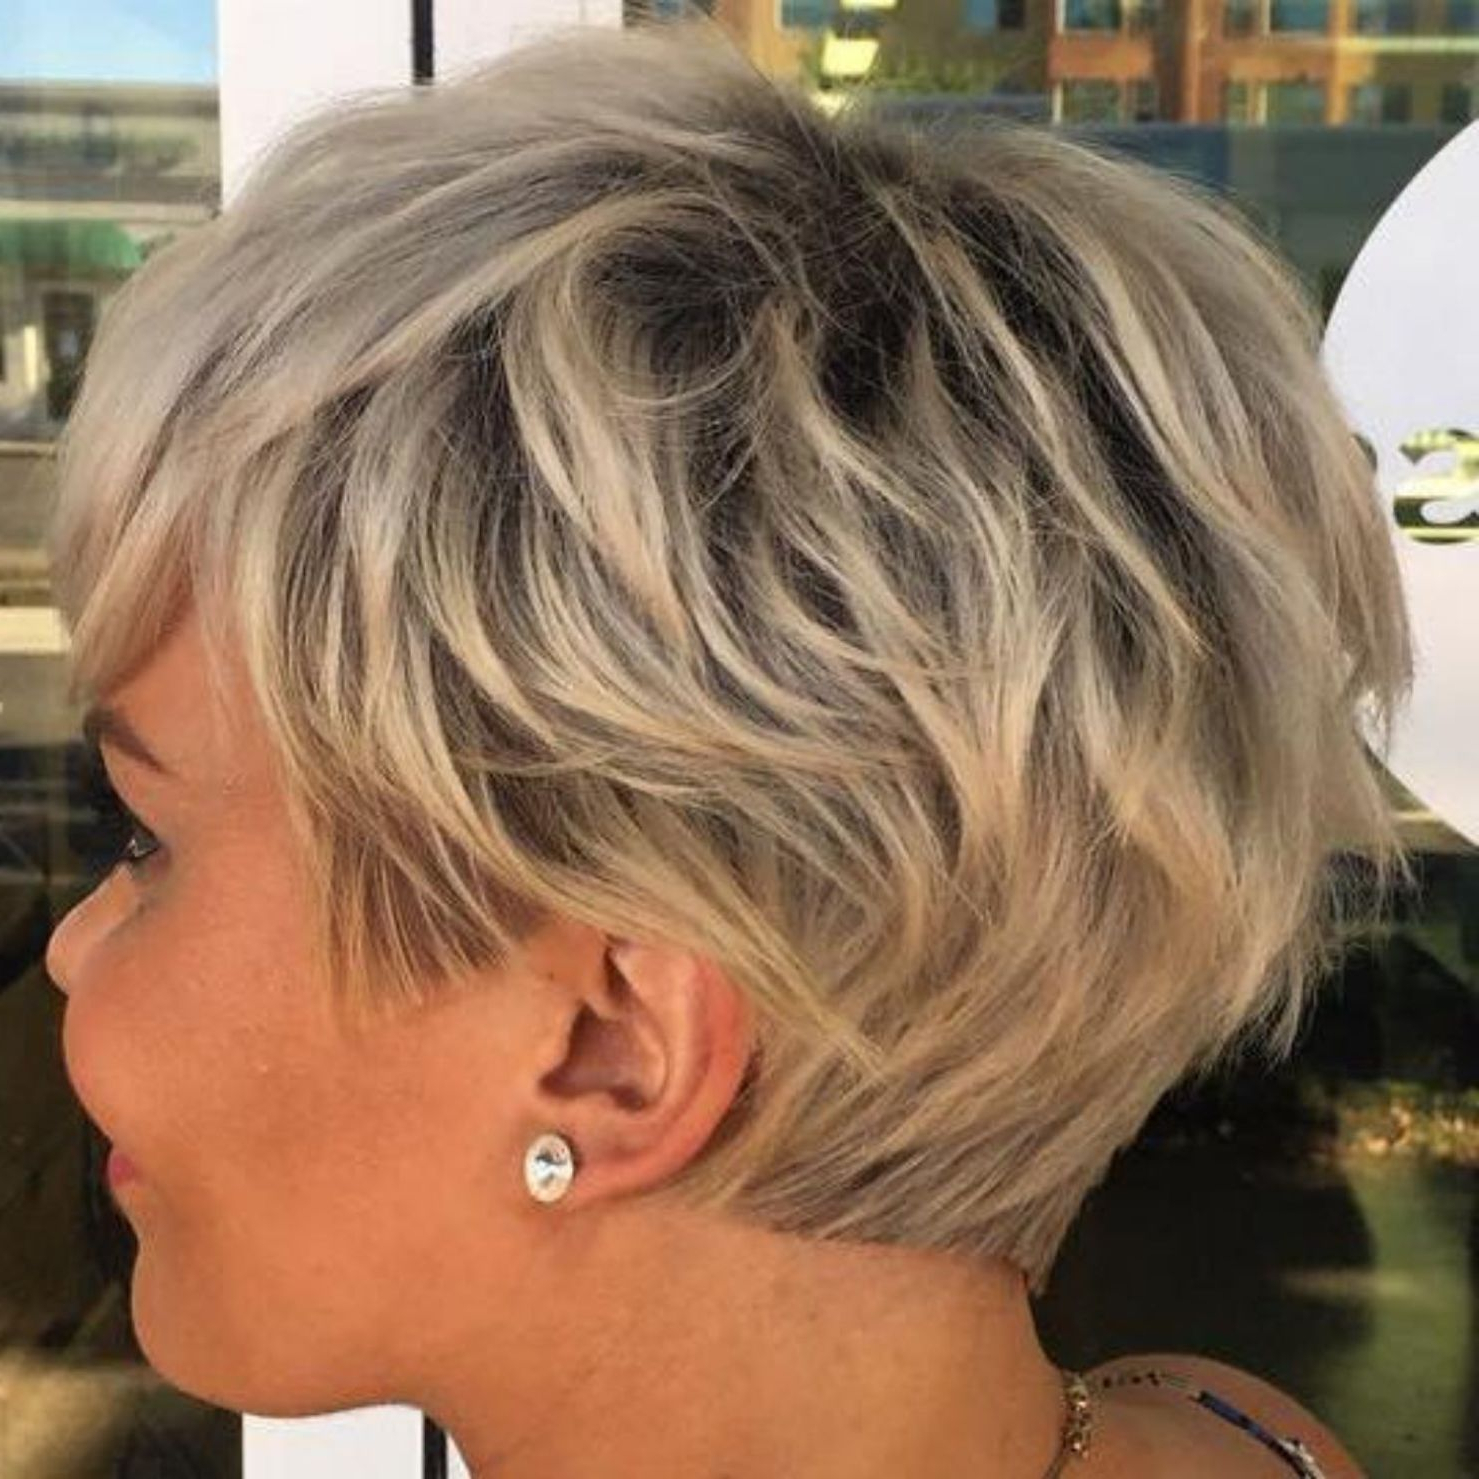 60 Short Shag Hairstyles That You Simply Can't Miss | Girlie Pertaining To Short Shag Blunt Haircuts (View 3 of 20)